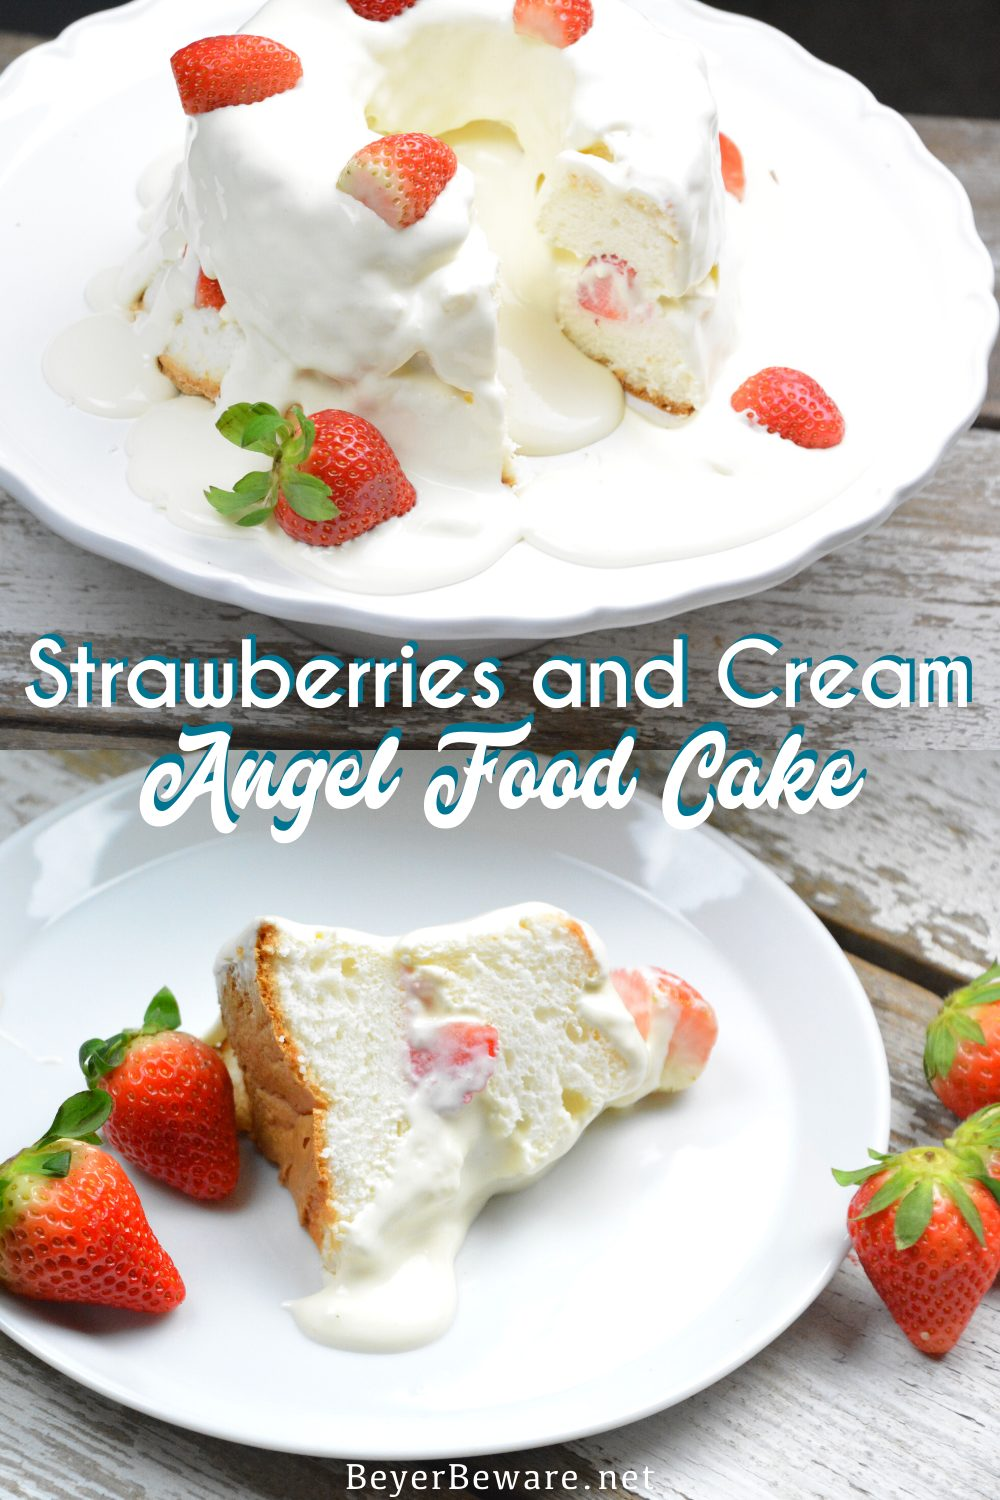 Strawberries and Cream Angel Food Cake is a semi-homemade dessert that is ready in under 10 minutes with the sweet combination of cool whip, cheesecake pudding, and powdered sugar poured over angel food cake and strawberries. #EasyRecipes #Cake #Dessert #Strawberries